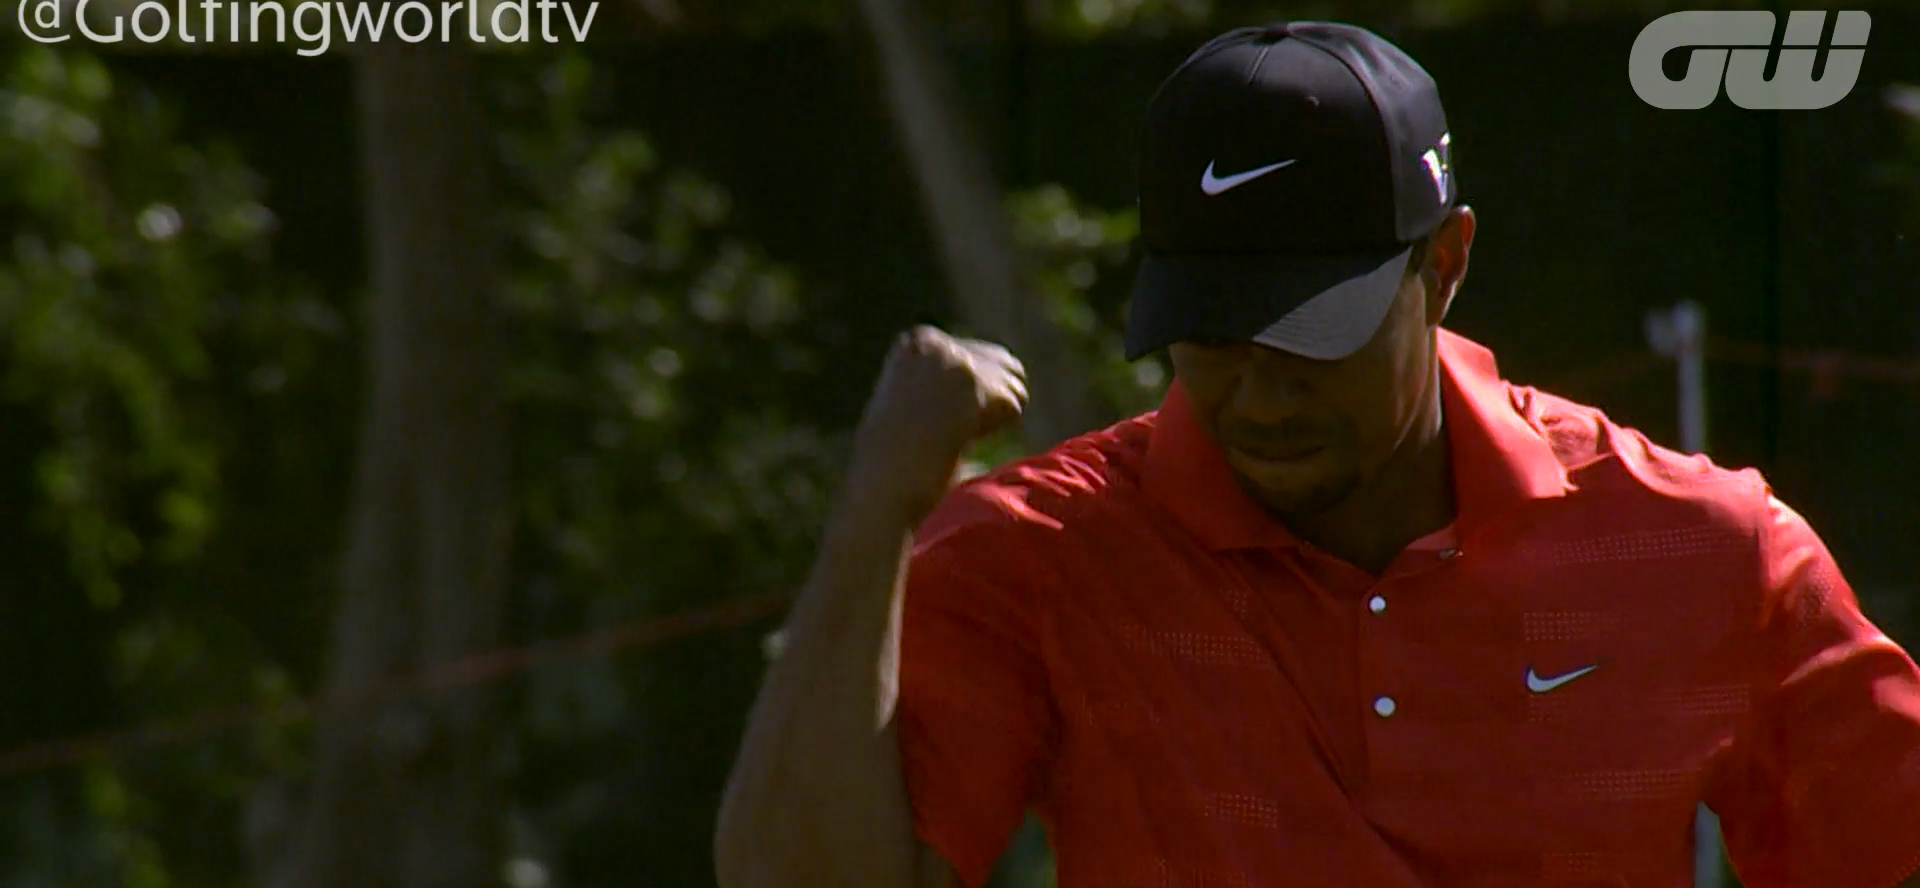 Holly Sonders Slip Golfing world: tiger is back in practice & poulter ...